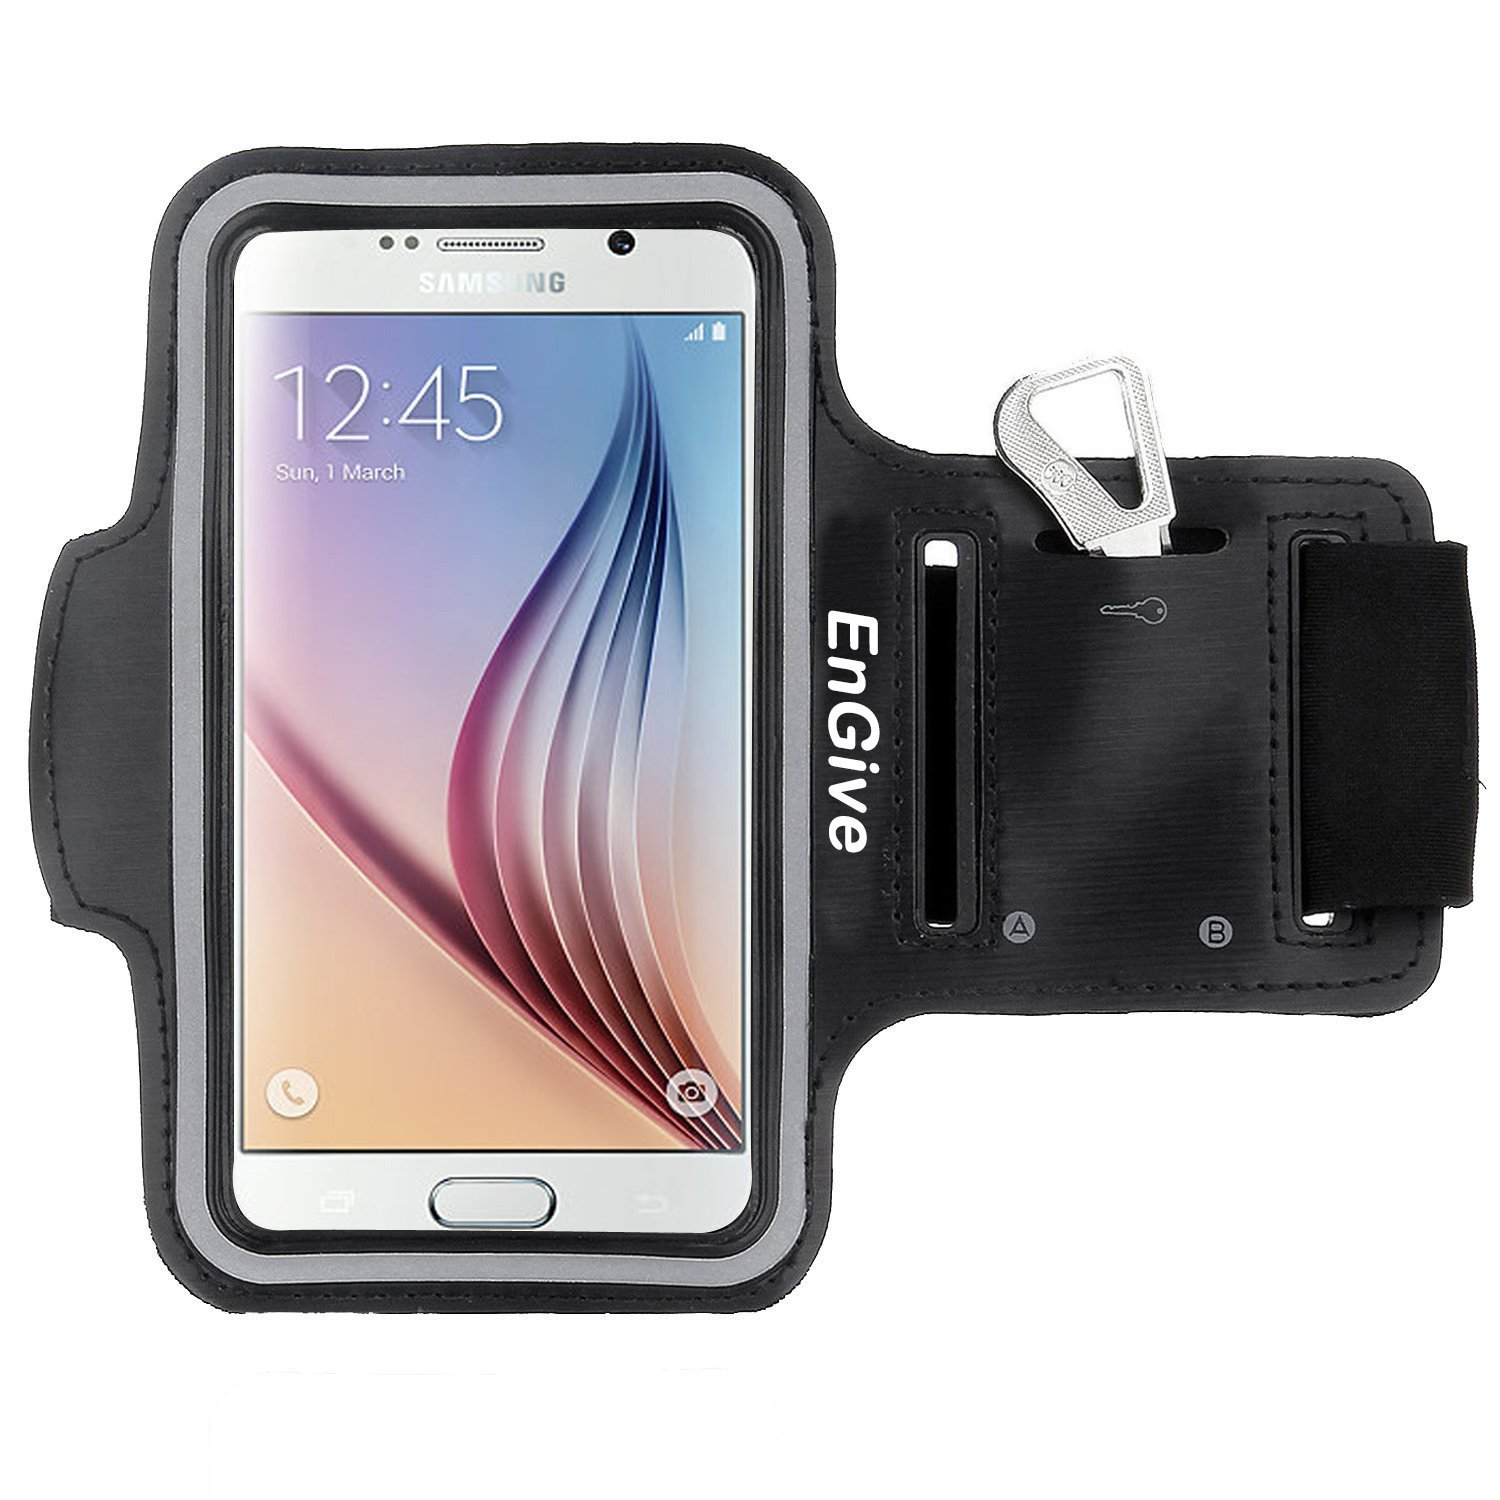 s6 cases, s6 armband case